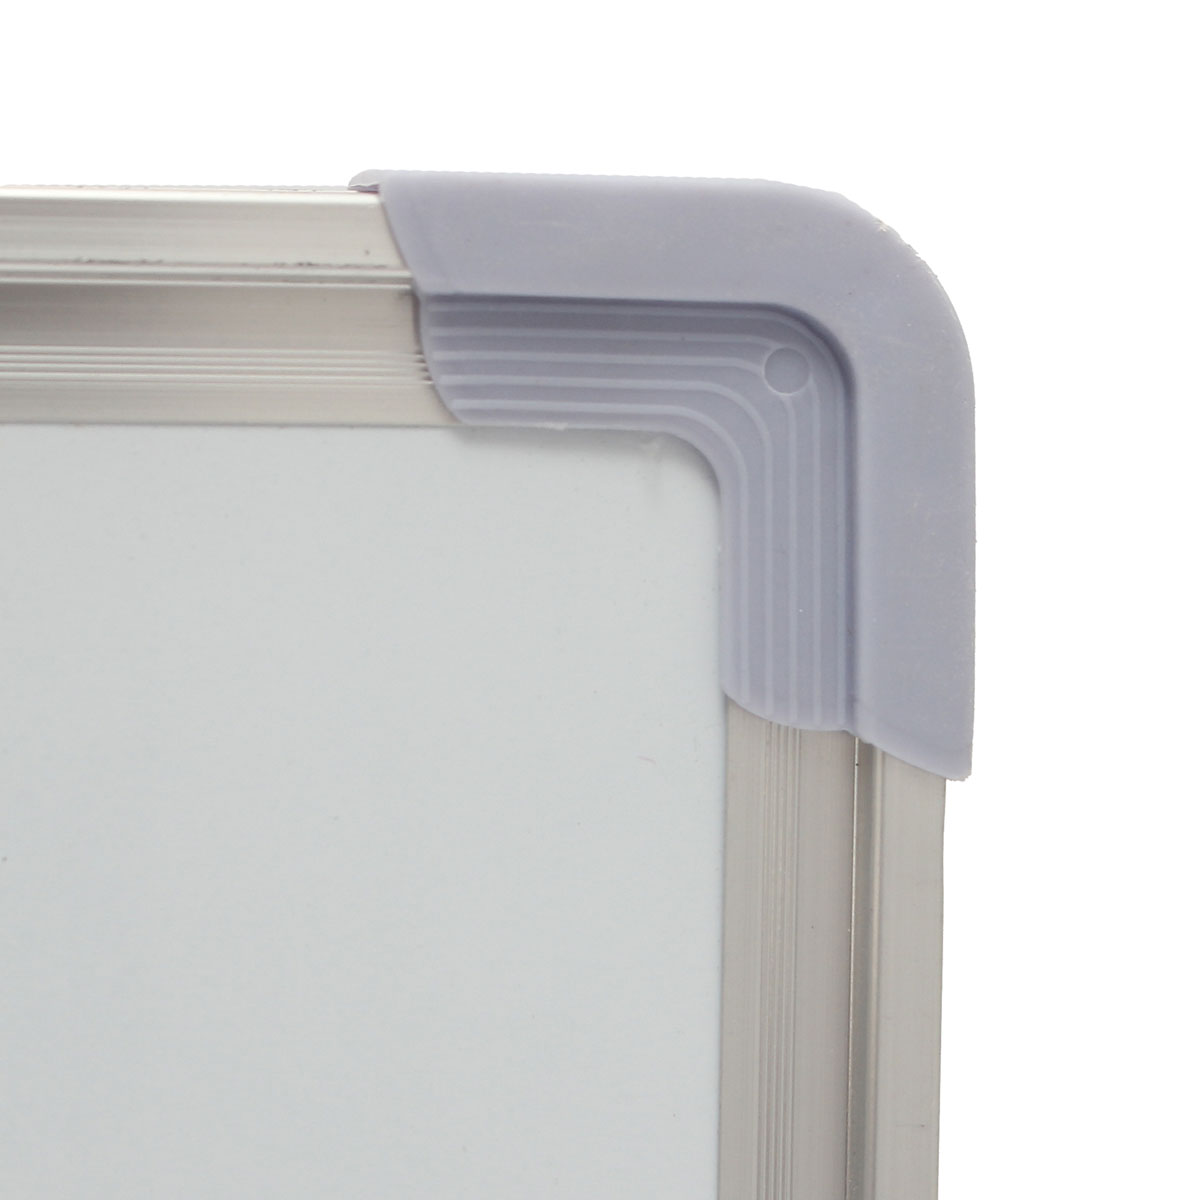 28x20 Inch Magnetic Dry Erase Whiteboard Writing Notice Board Single Side Office School Message